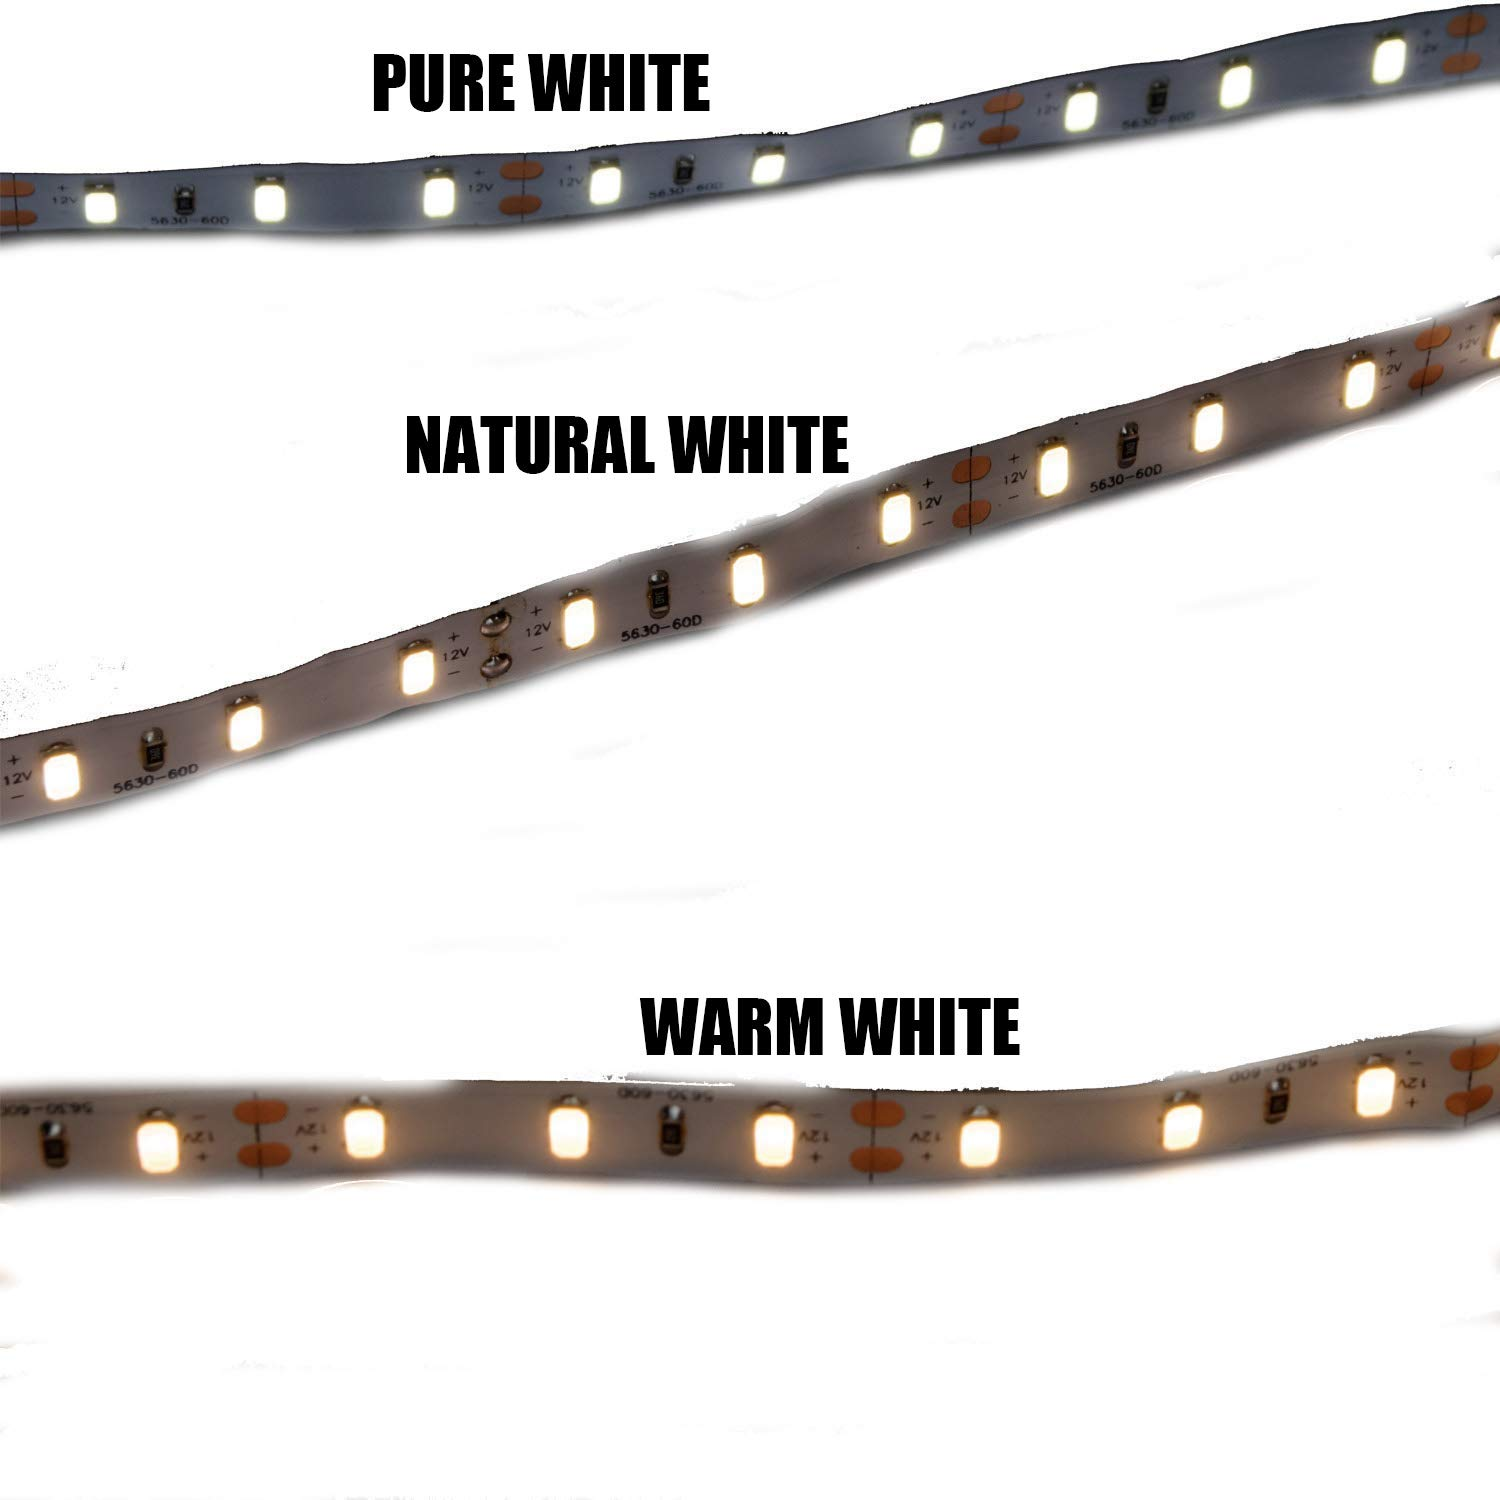 MARSWELL High-quality LED Strip Lights Neutral White 4000K-4500K High CRI 80+ SMD5630 Non-waterproof by Marswell